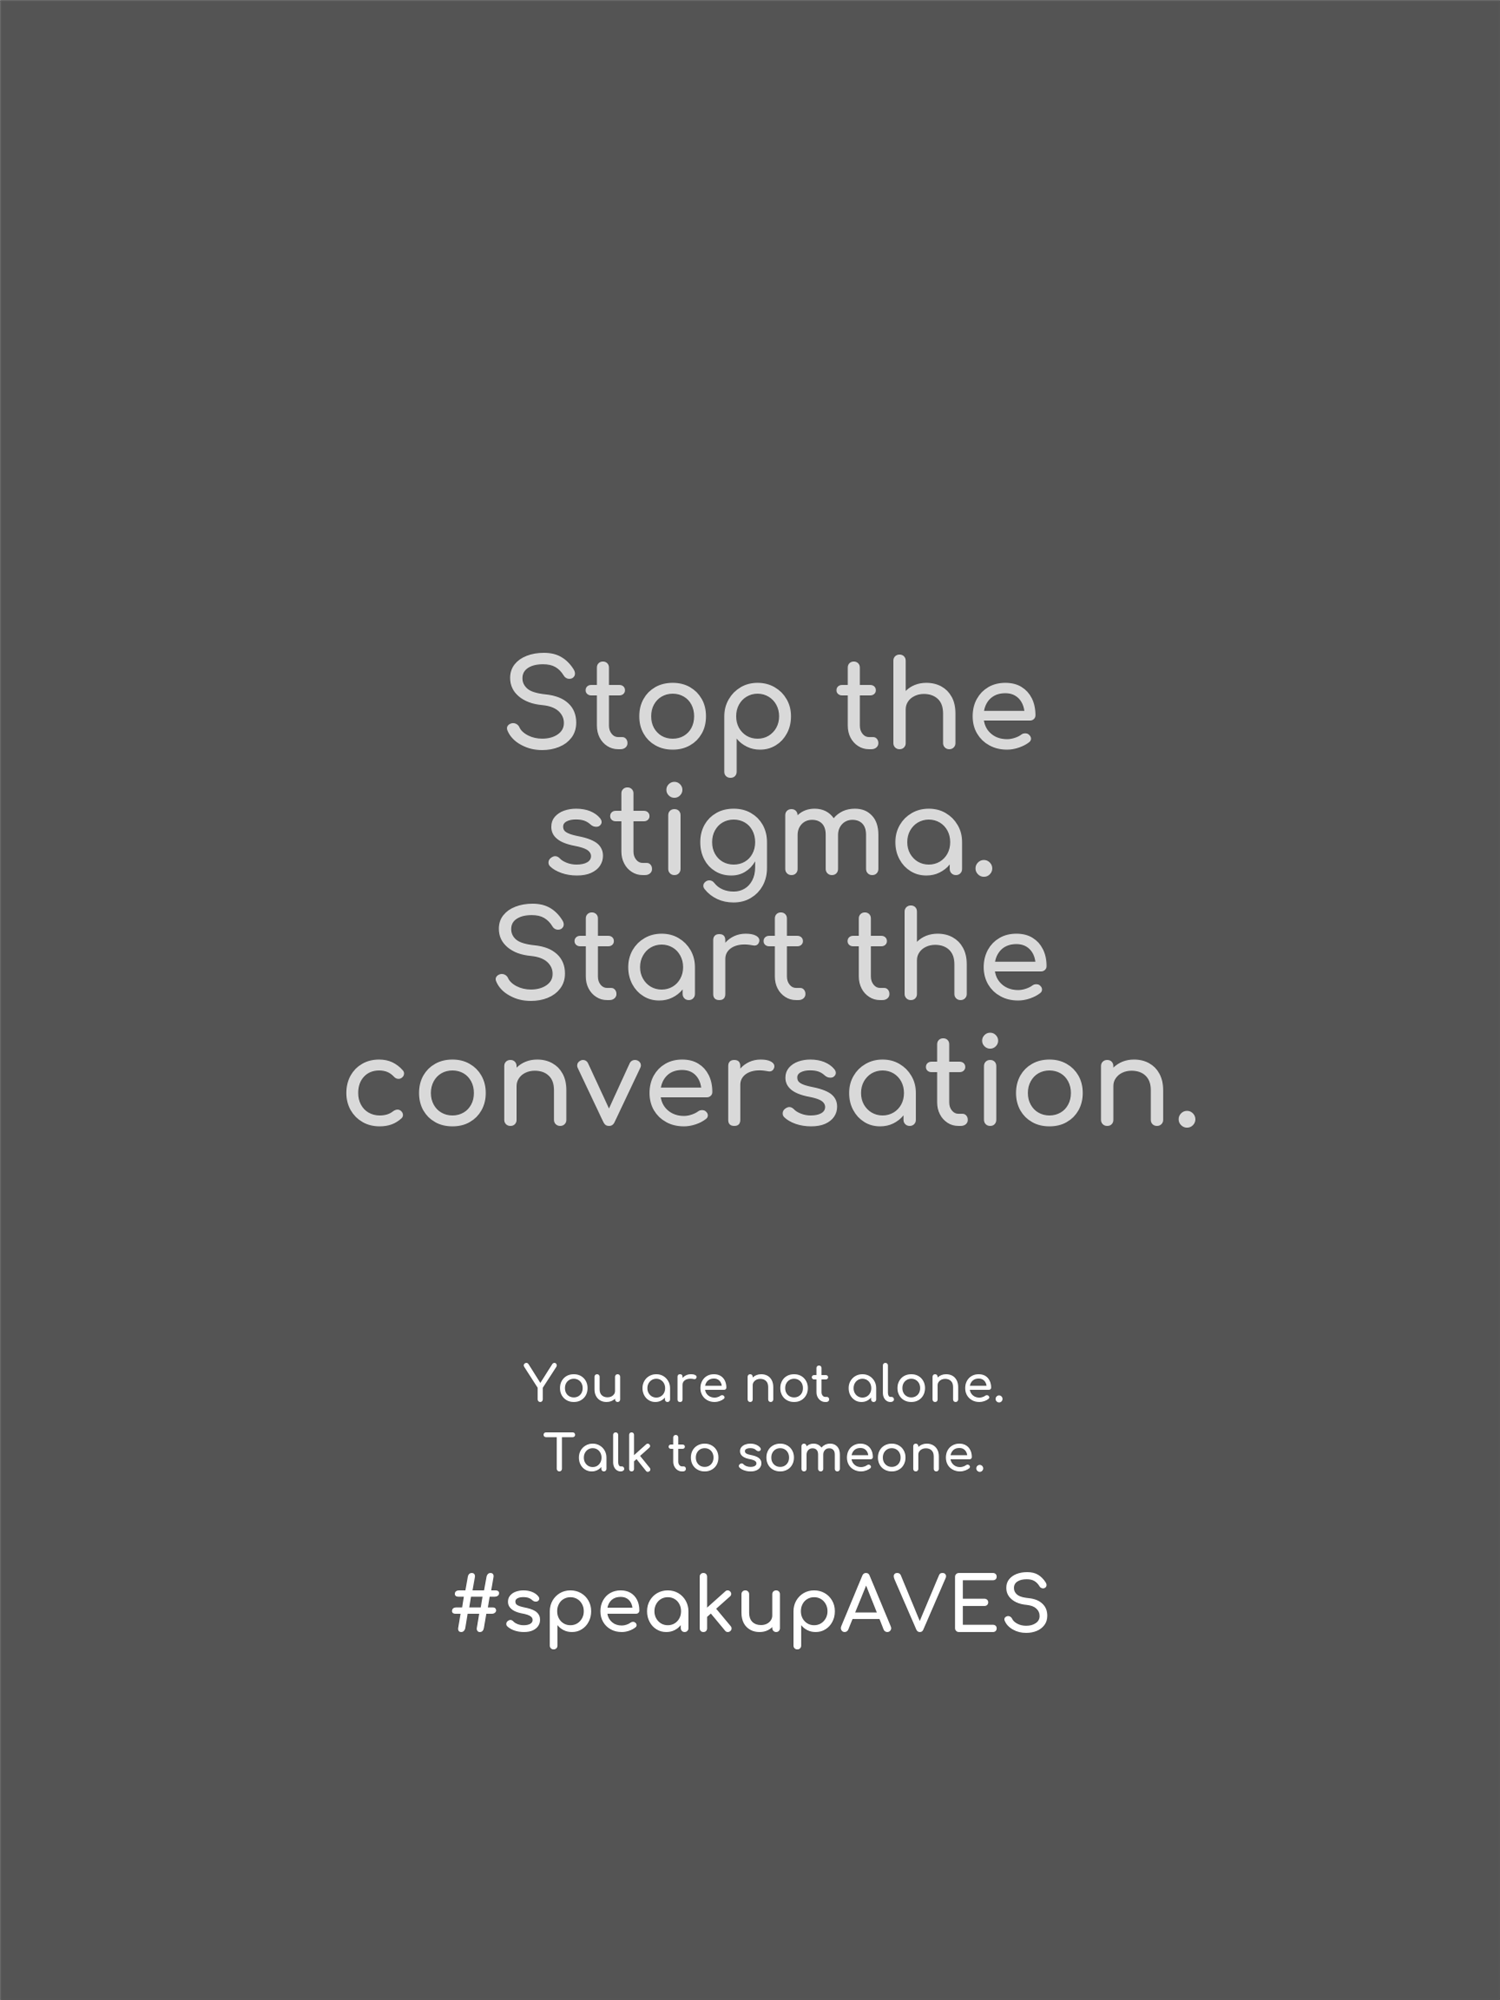 #speakupAVES Mental Health Awareness Month